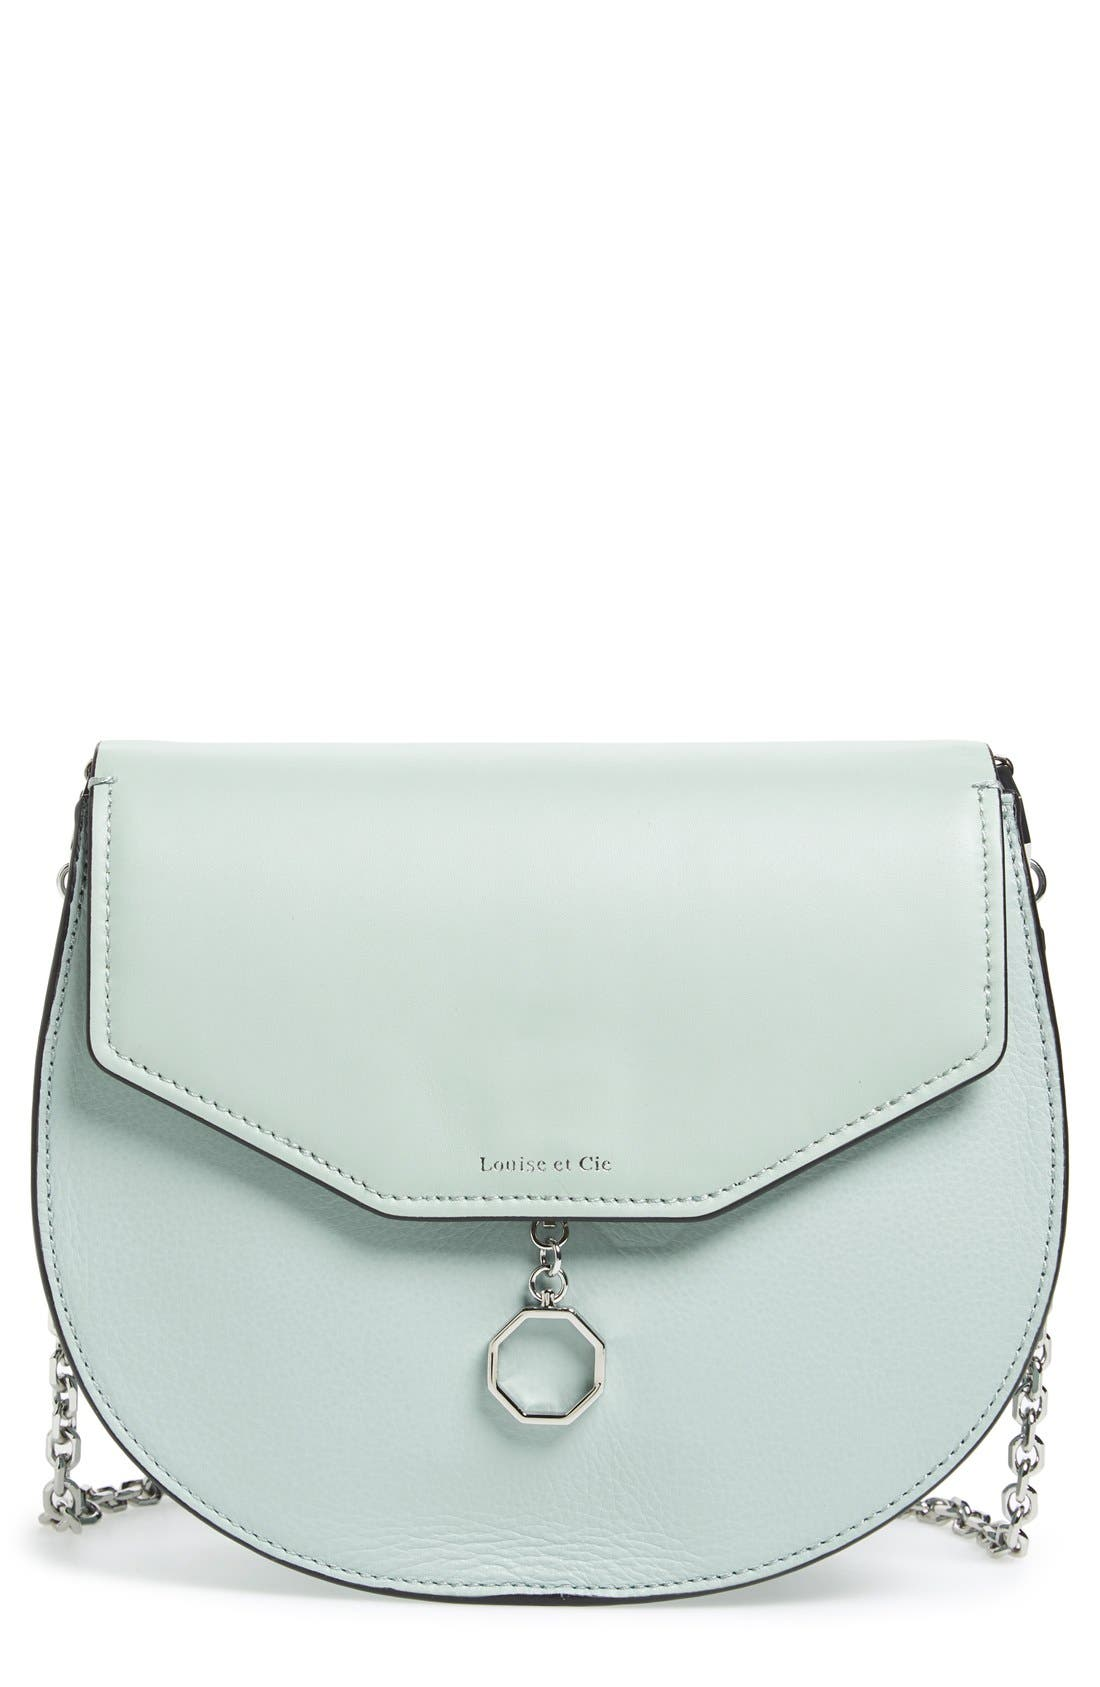 Alternate Image 1 Selected - Louise et Cie 'Jael' Leather Shoulder Bag